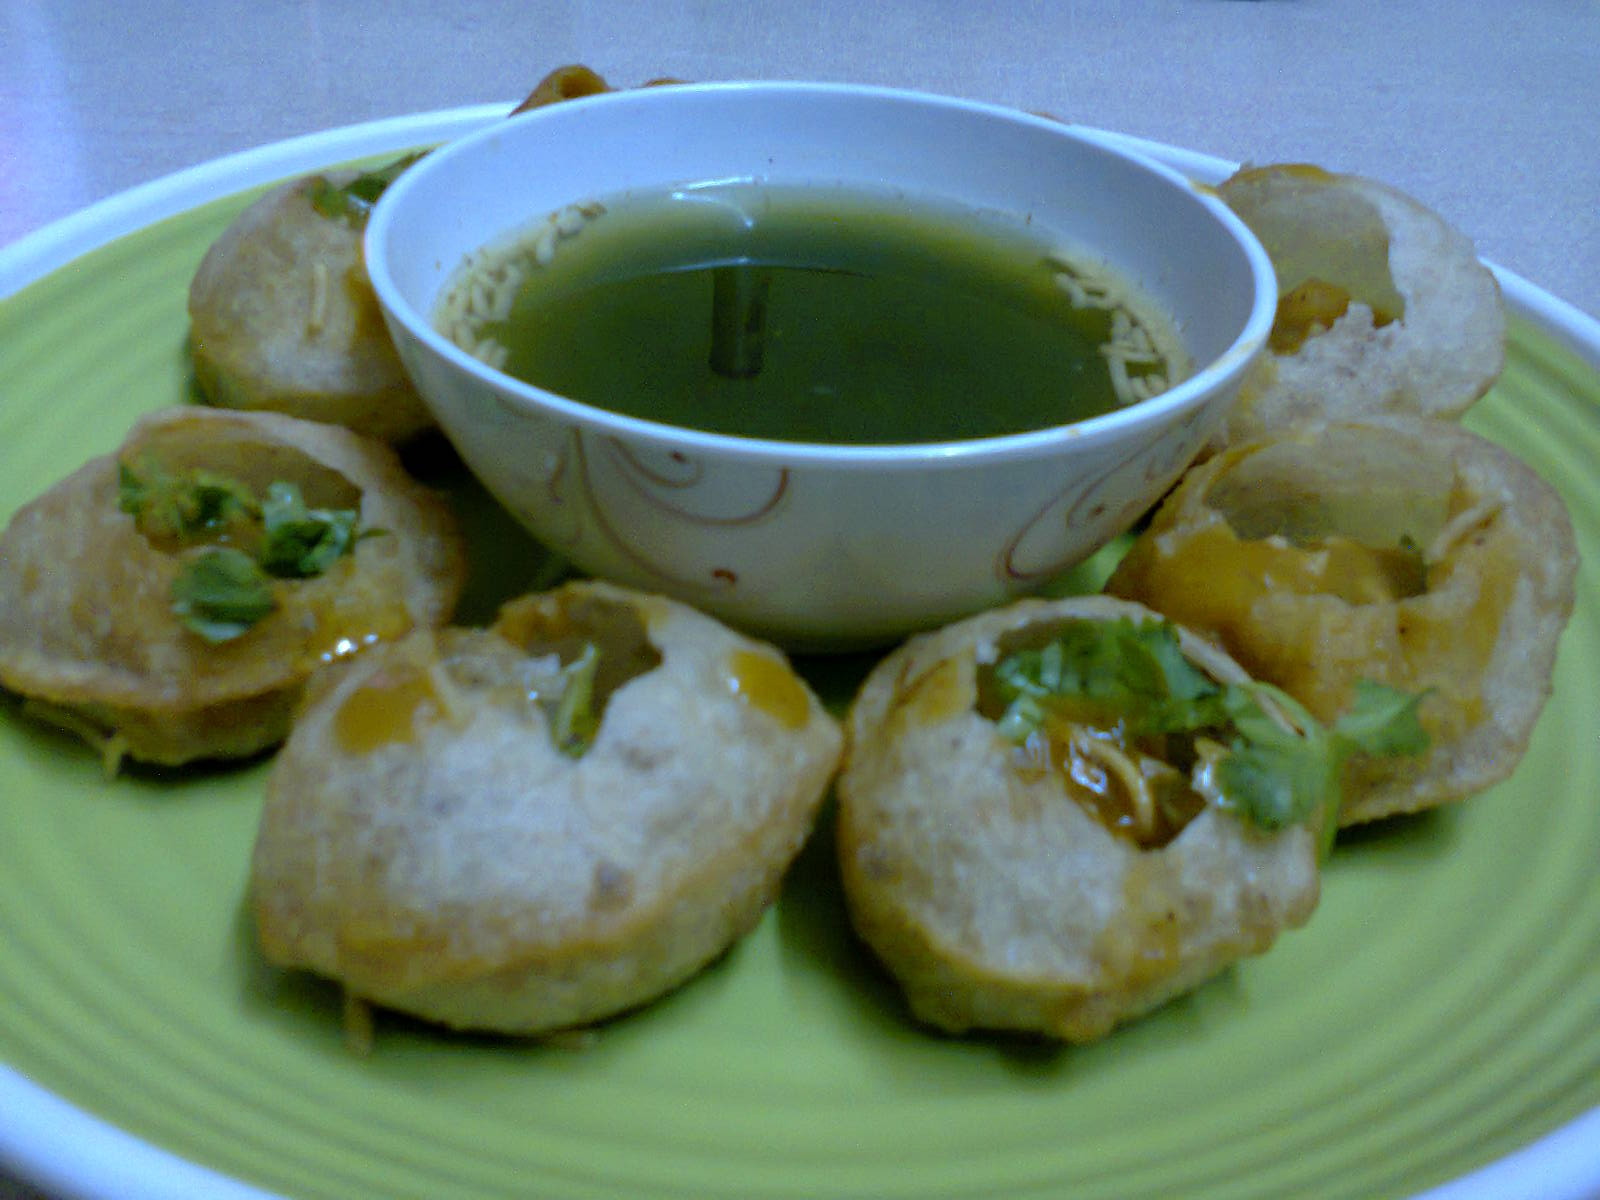 Gol guppapani puri indian recipes india is known for its food chaats is one among it preparing of chaats at home is very easy it is one of the street foodi love spicy chaats especially forumfinder Images